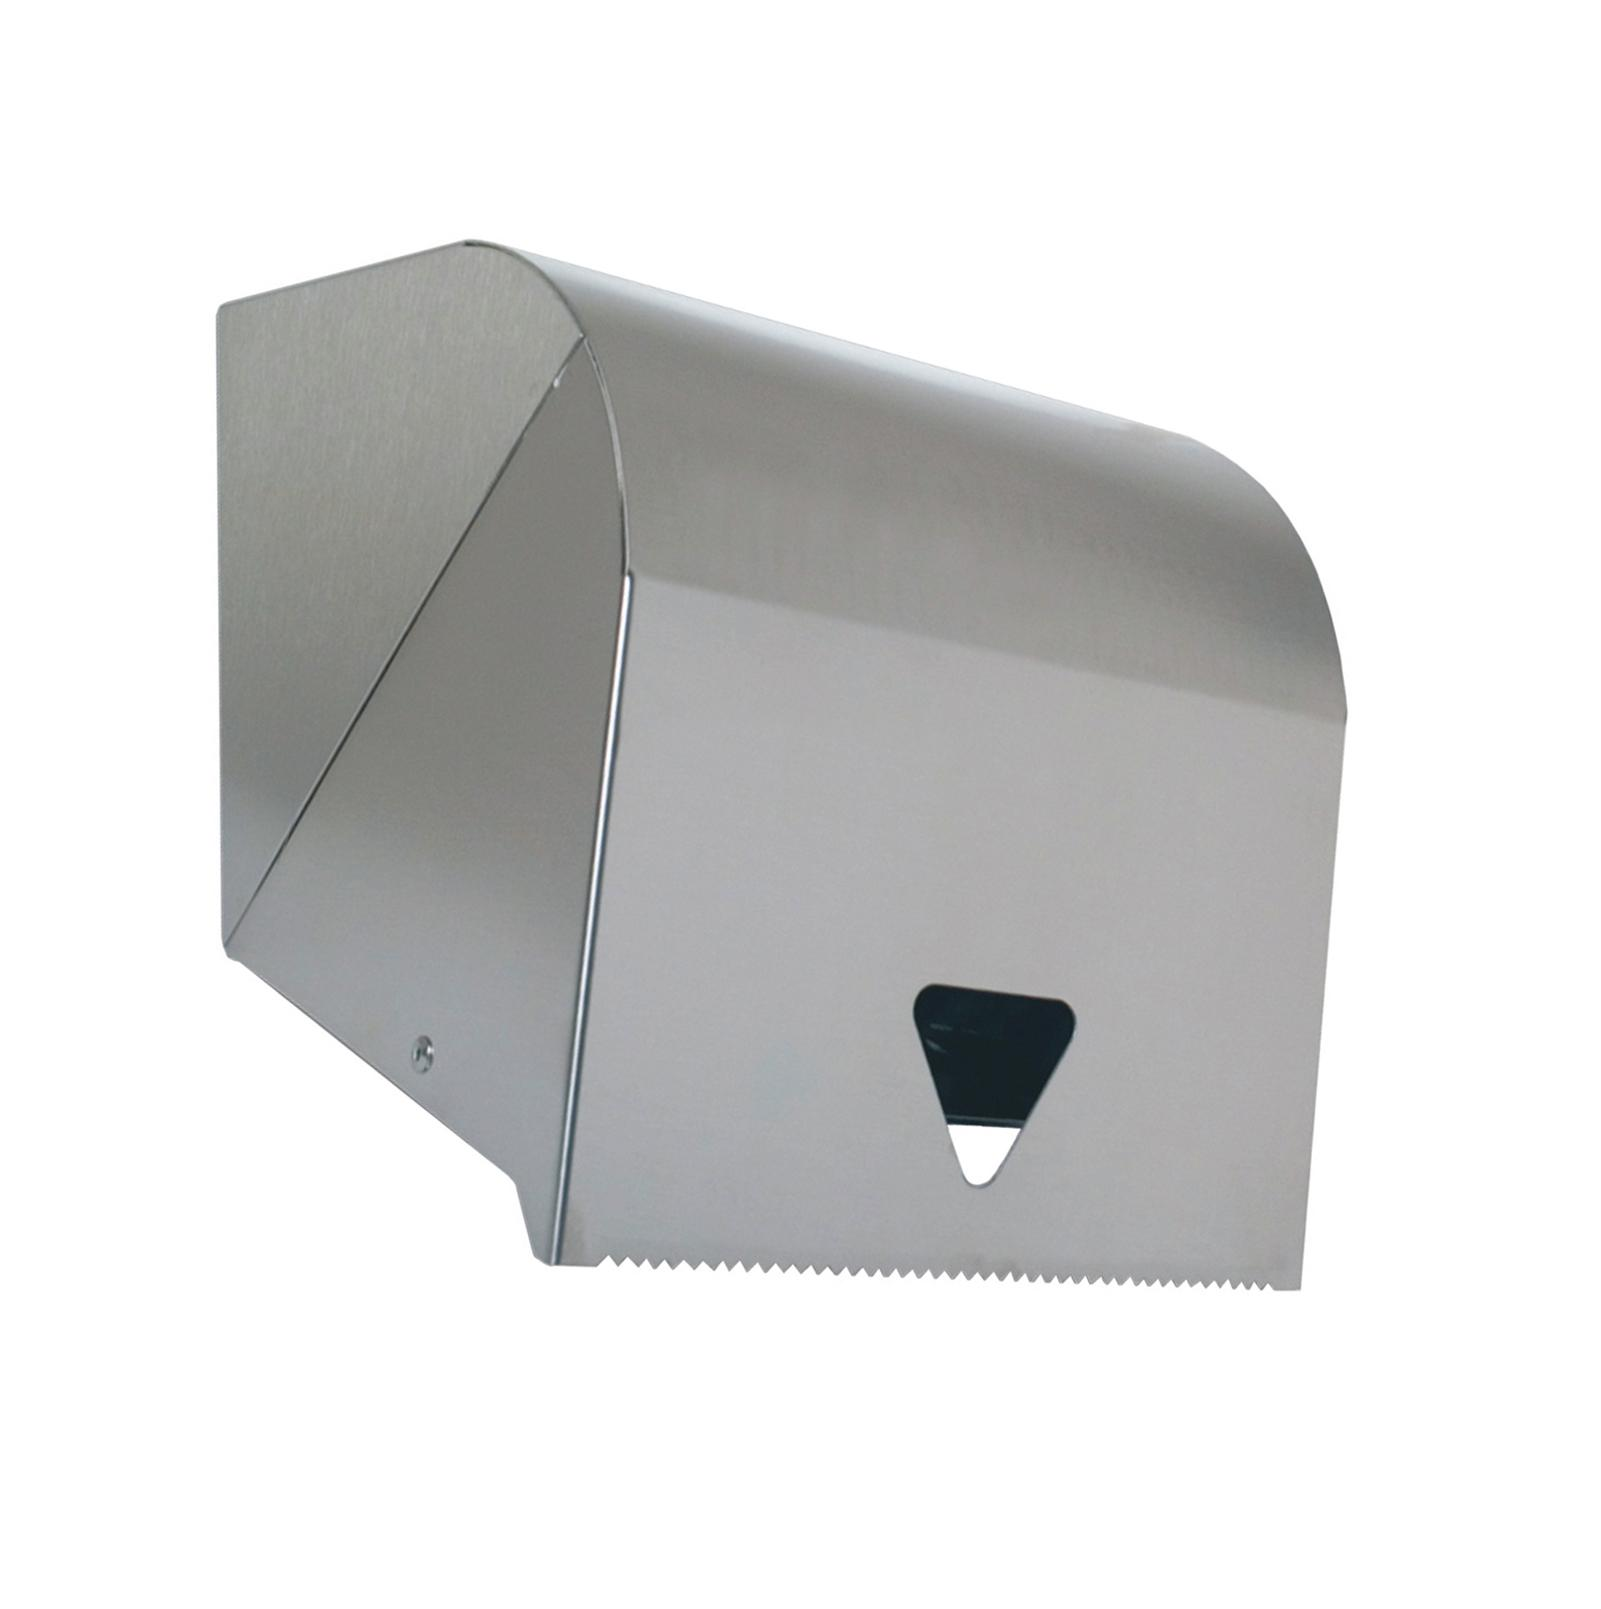 Paper Towel Dispenser For Home Bathroom. Stainless Steel Roll Towel  Dispenser Paper For Home Bathroom